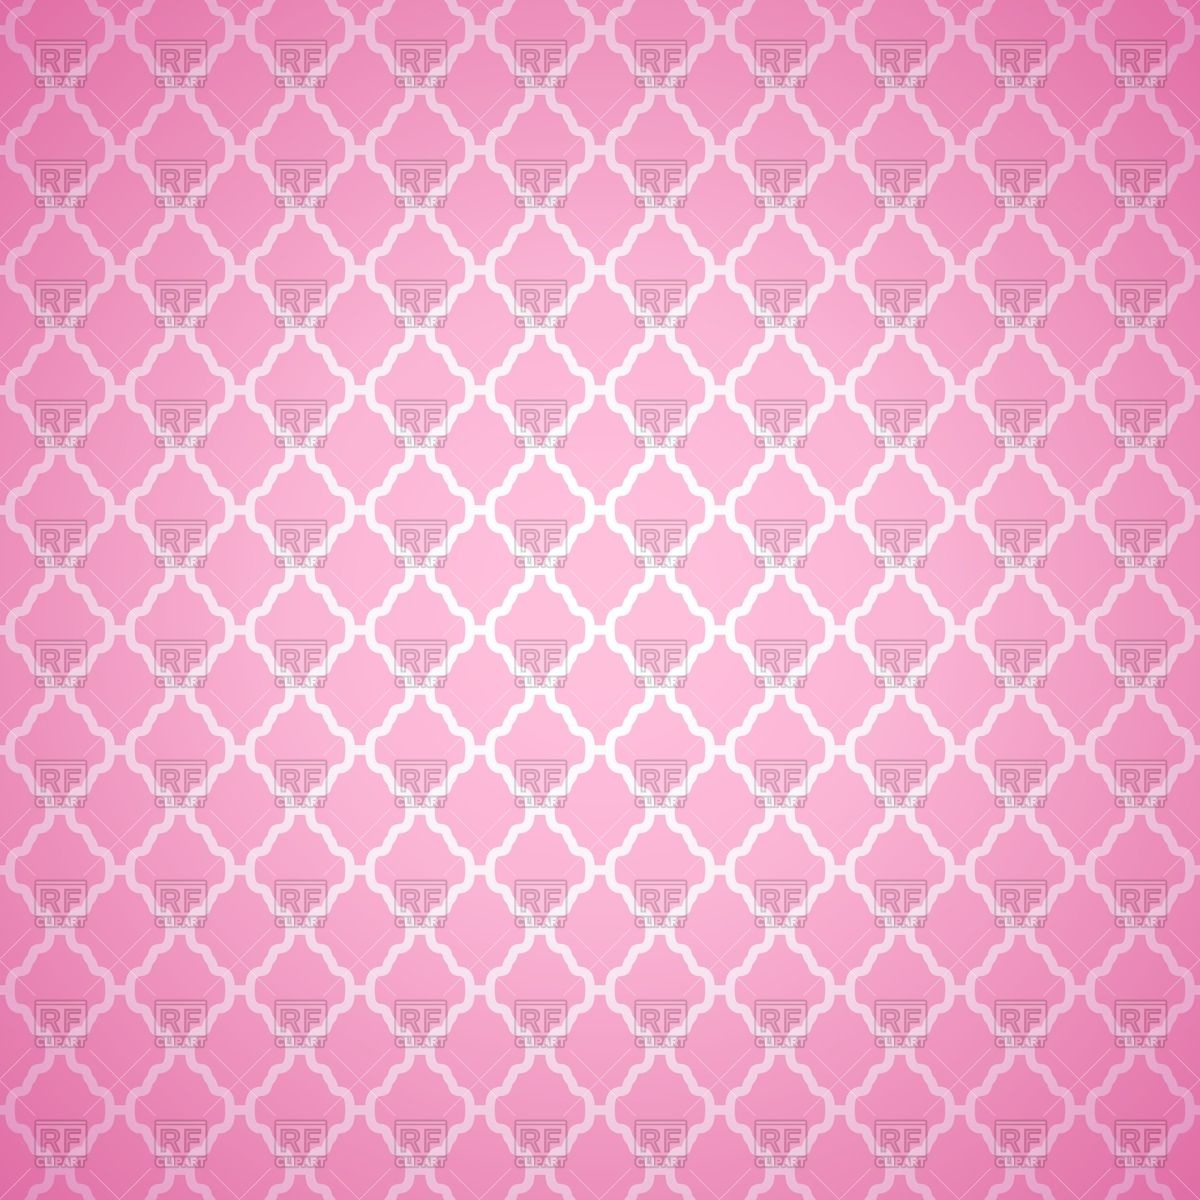 Free Download Pink Retro Wallpaper With Mesh Backgrounds